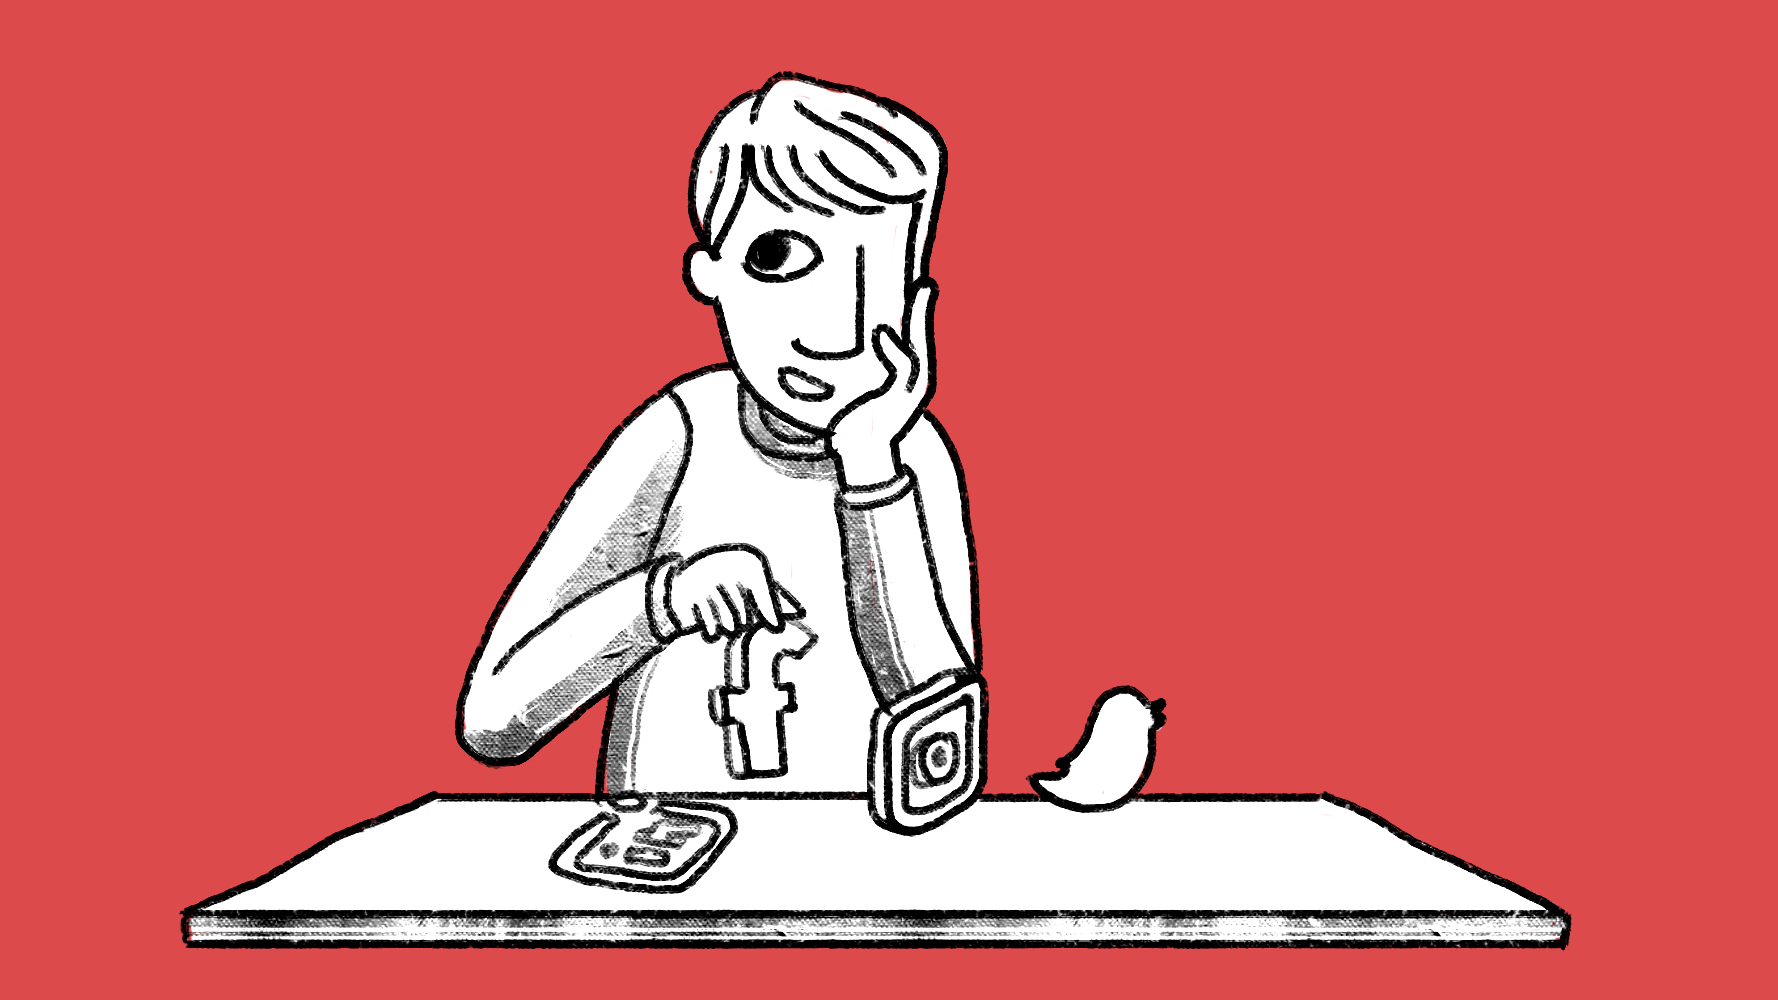 Illustration of a man sitting at a table and holding a social media logo.